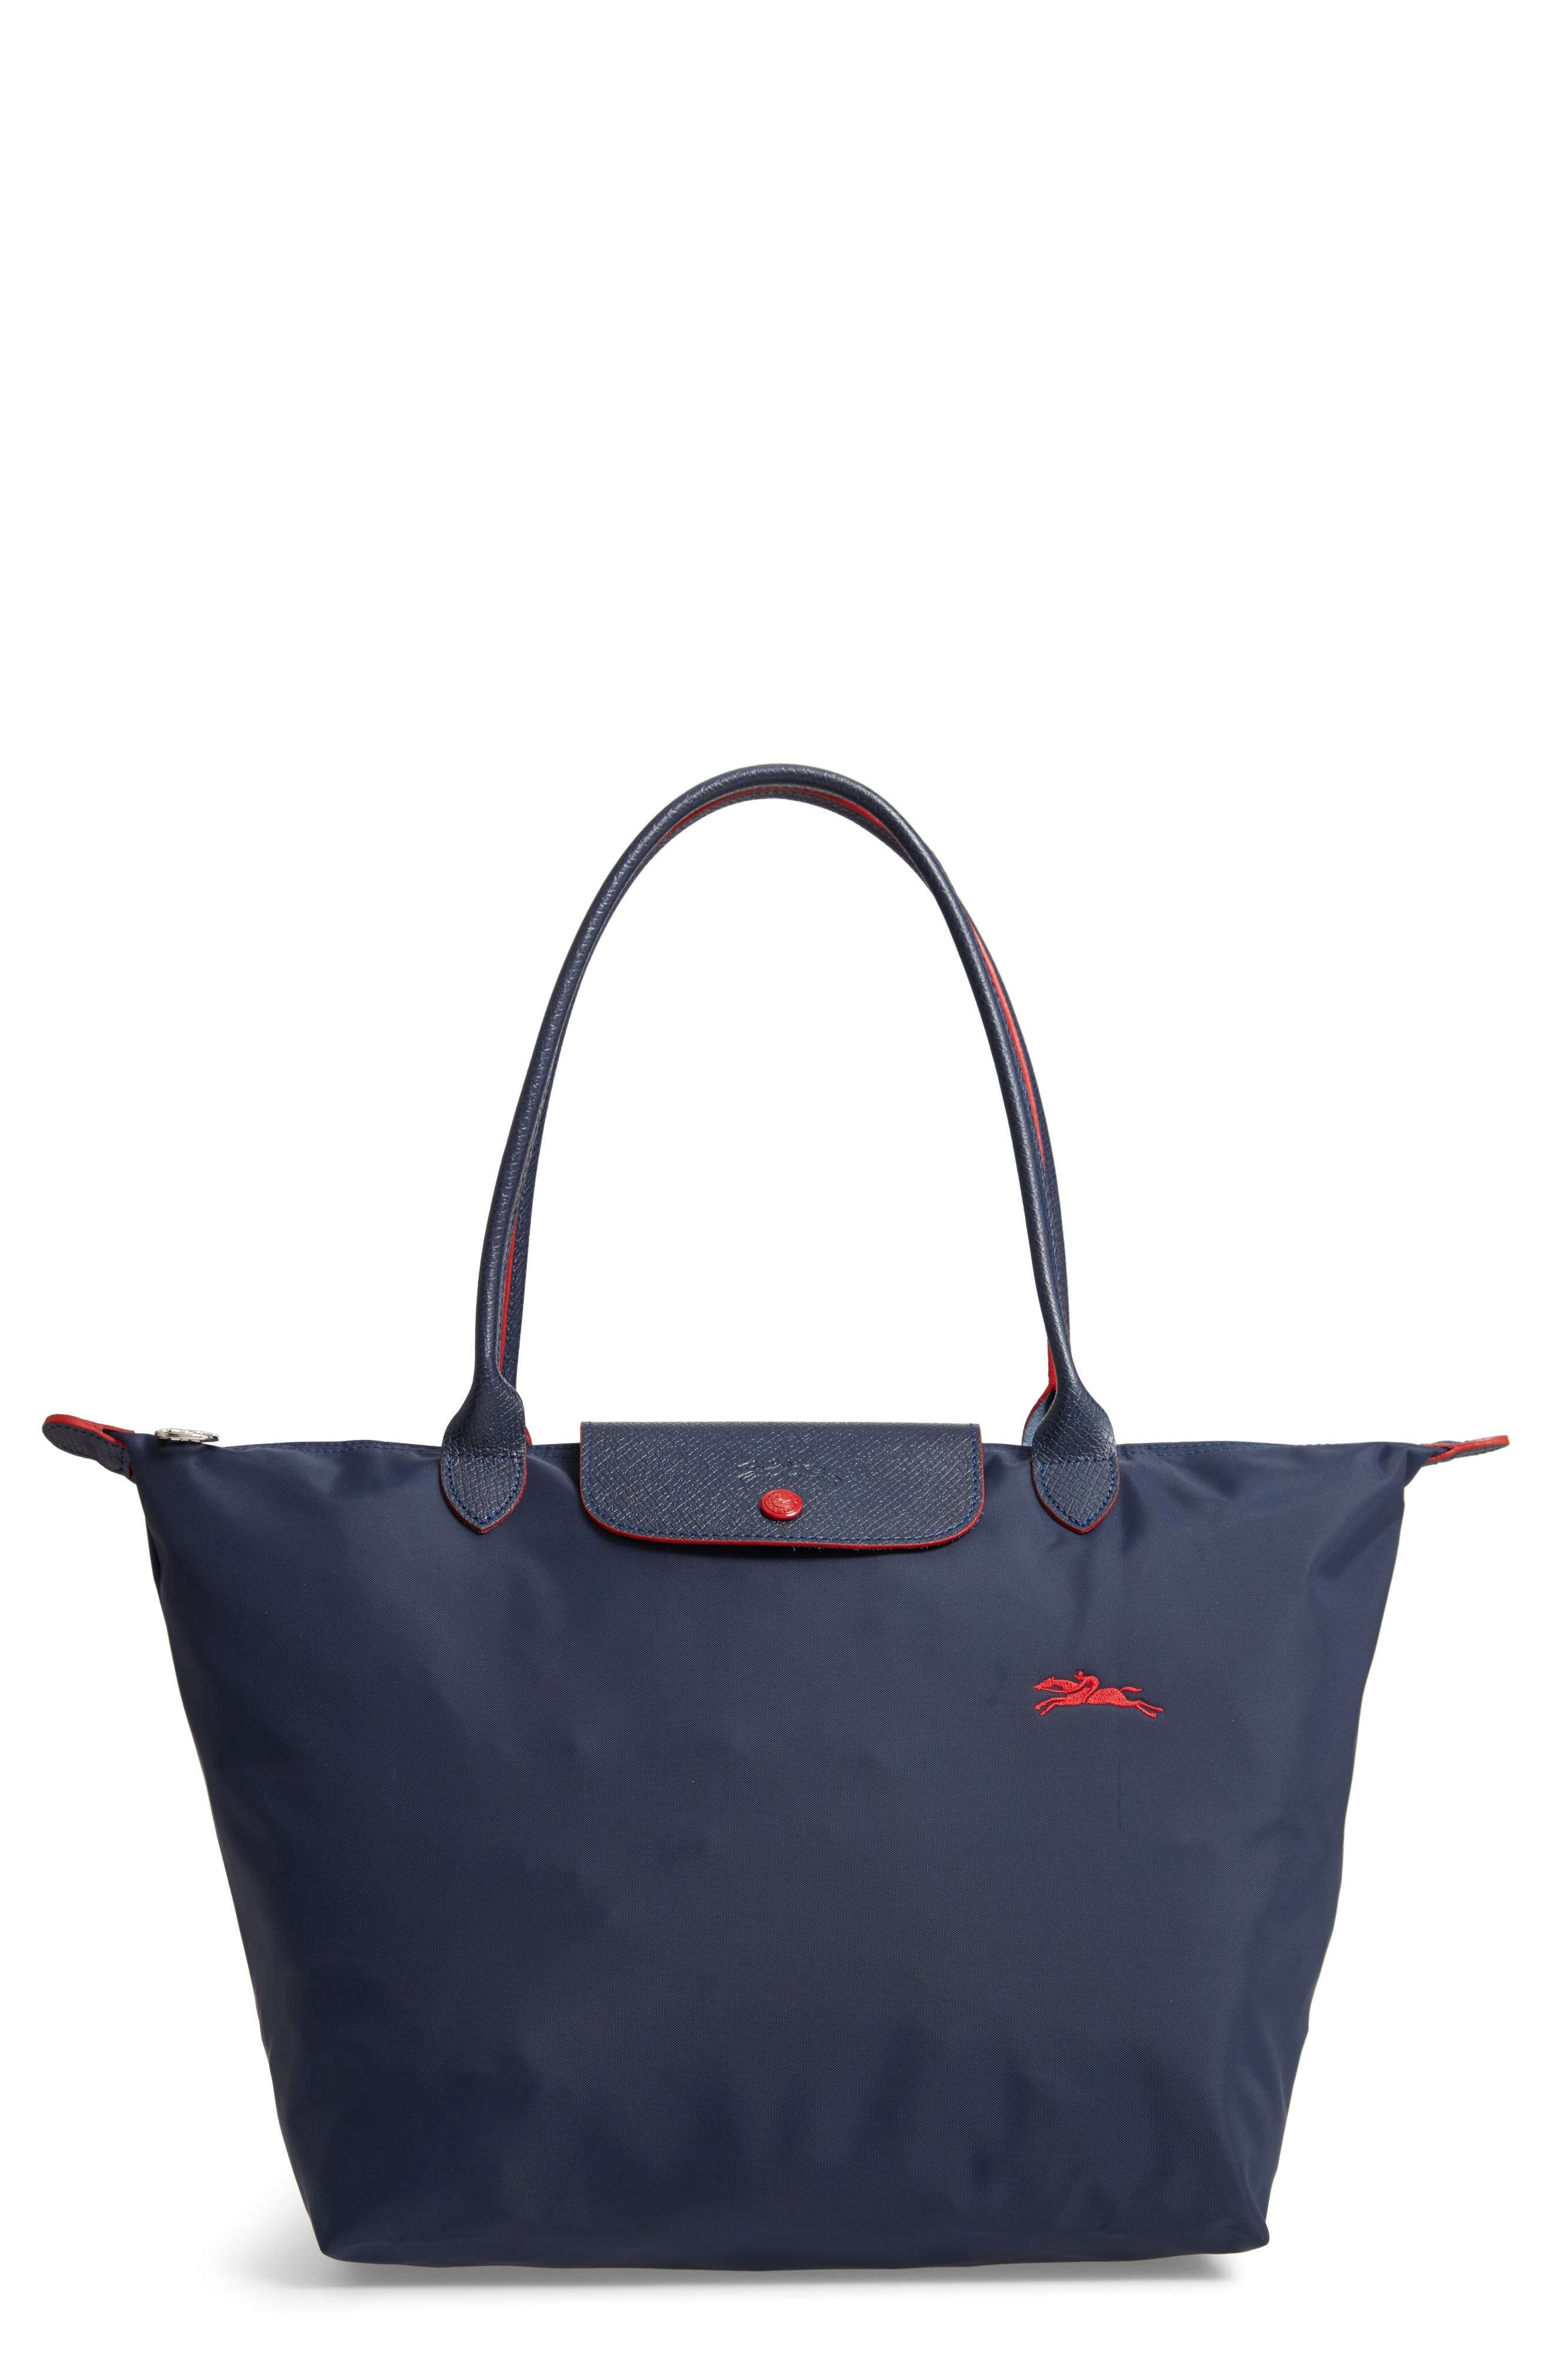 Le Pliage Club Large Nylon Shoulder Tote Bag in Navy